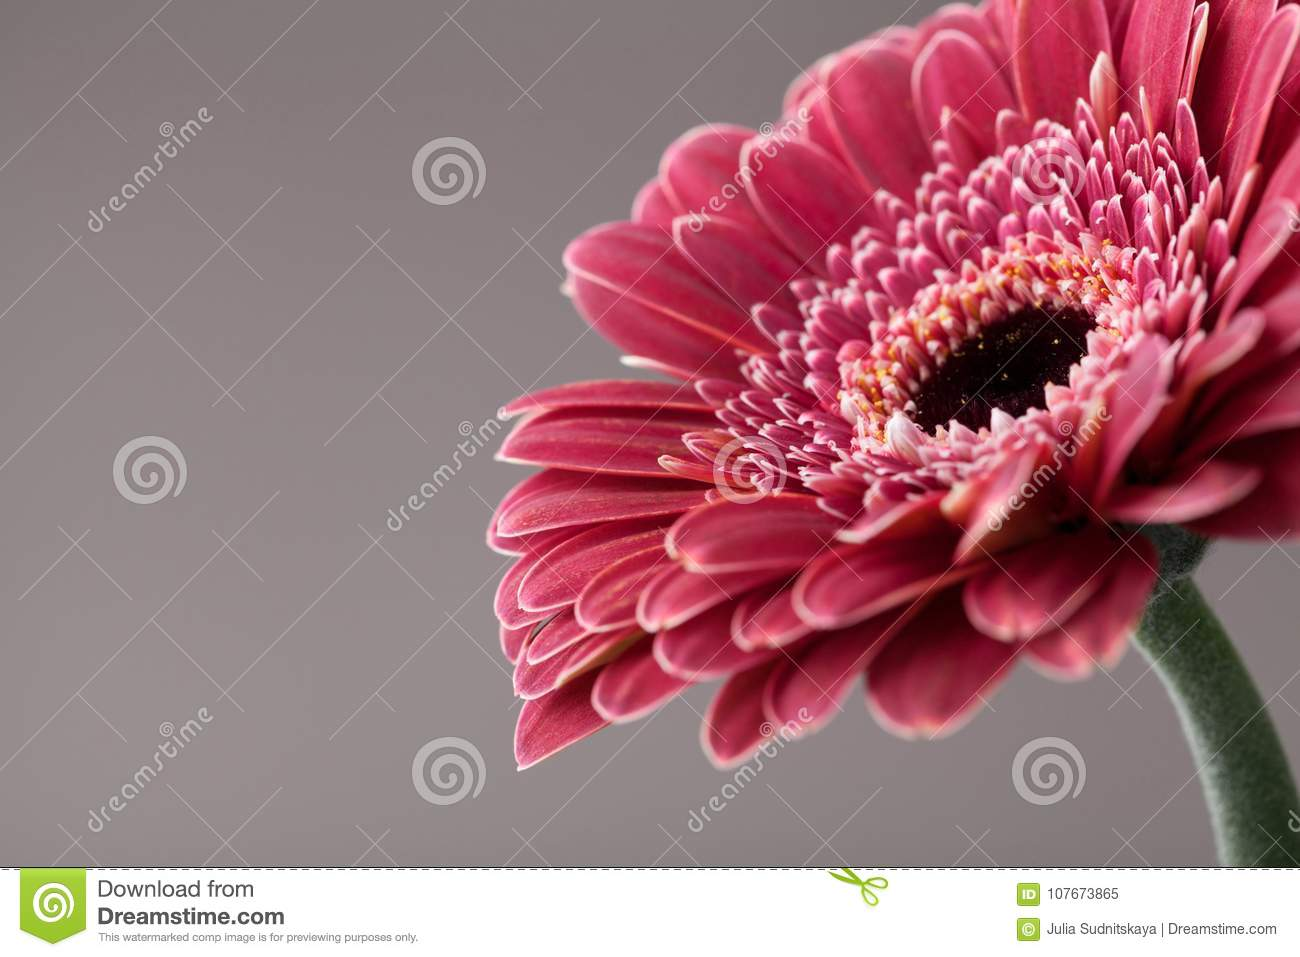 Beautiful Single Gerbera Daisy Flower Closeup Greeting Card For